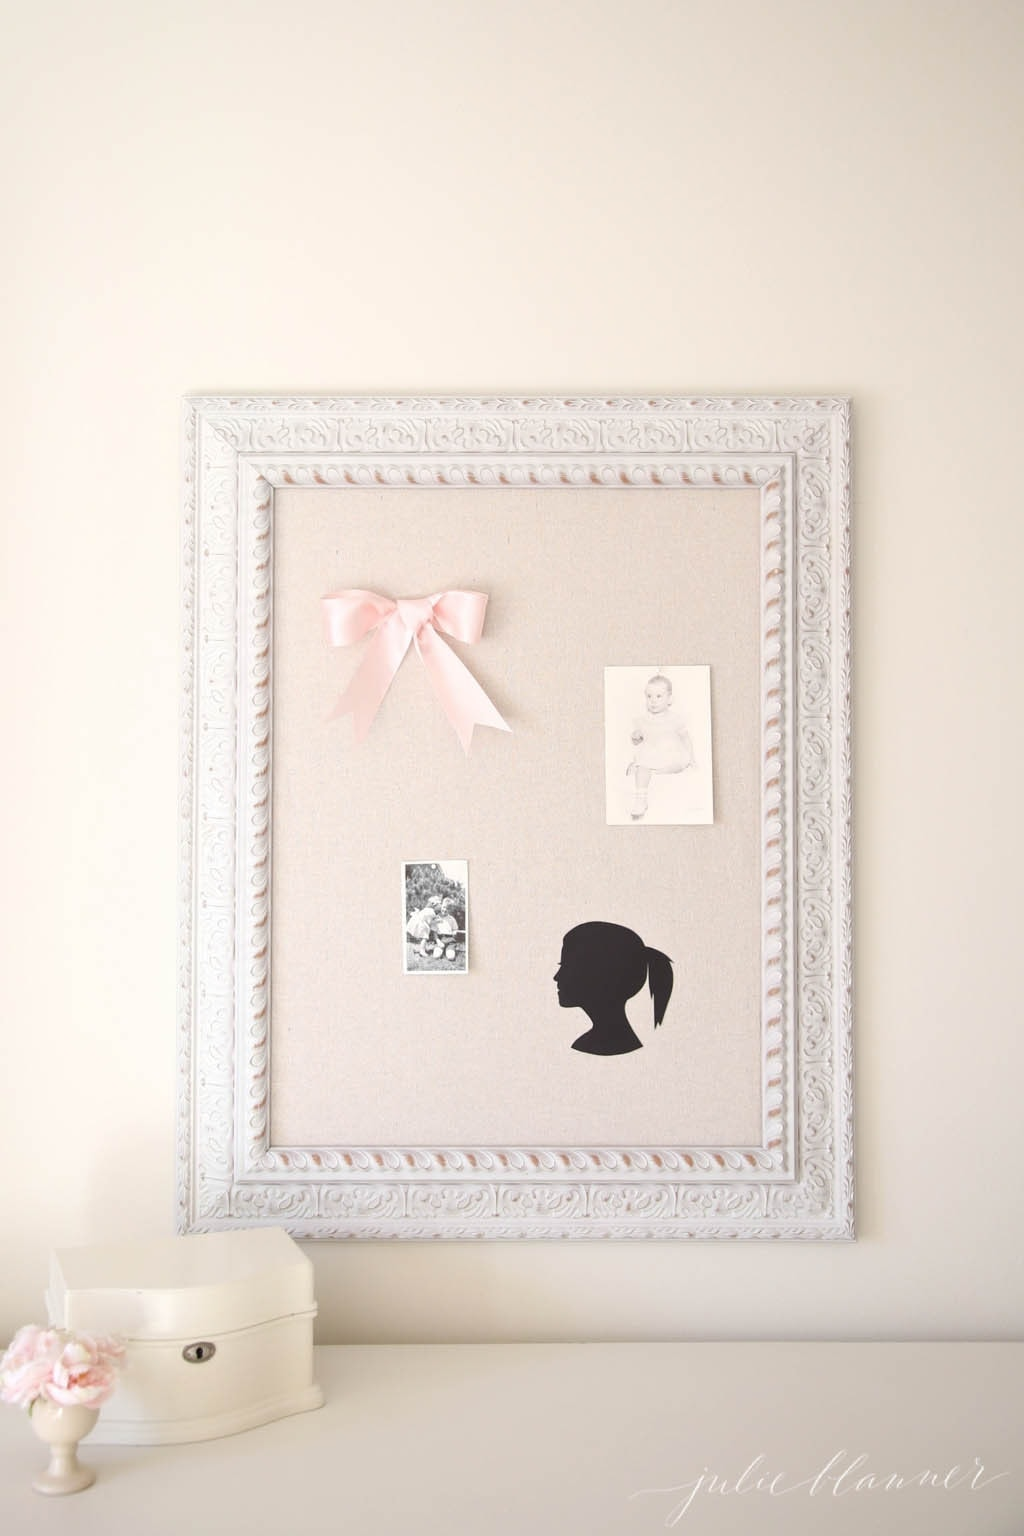 DIY decorating ideas for a girl's bedroom